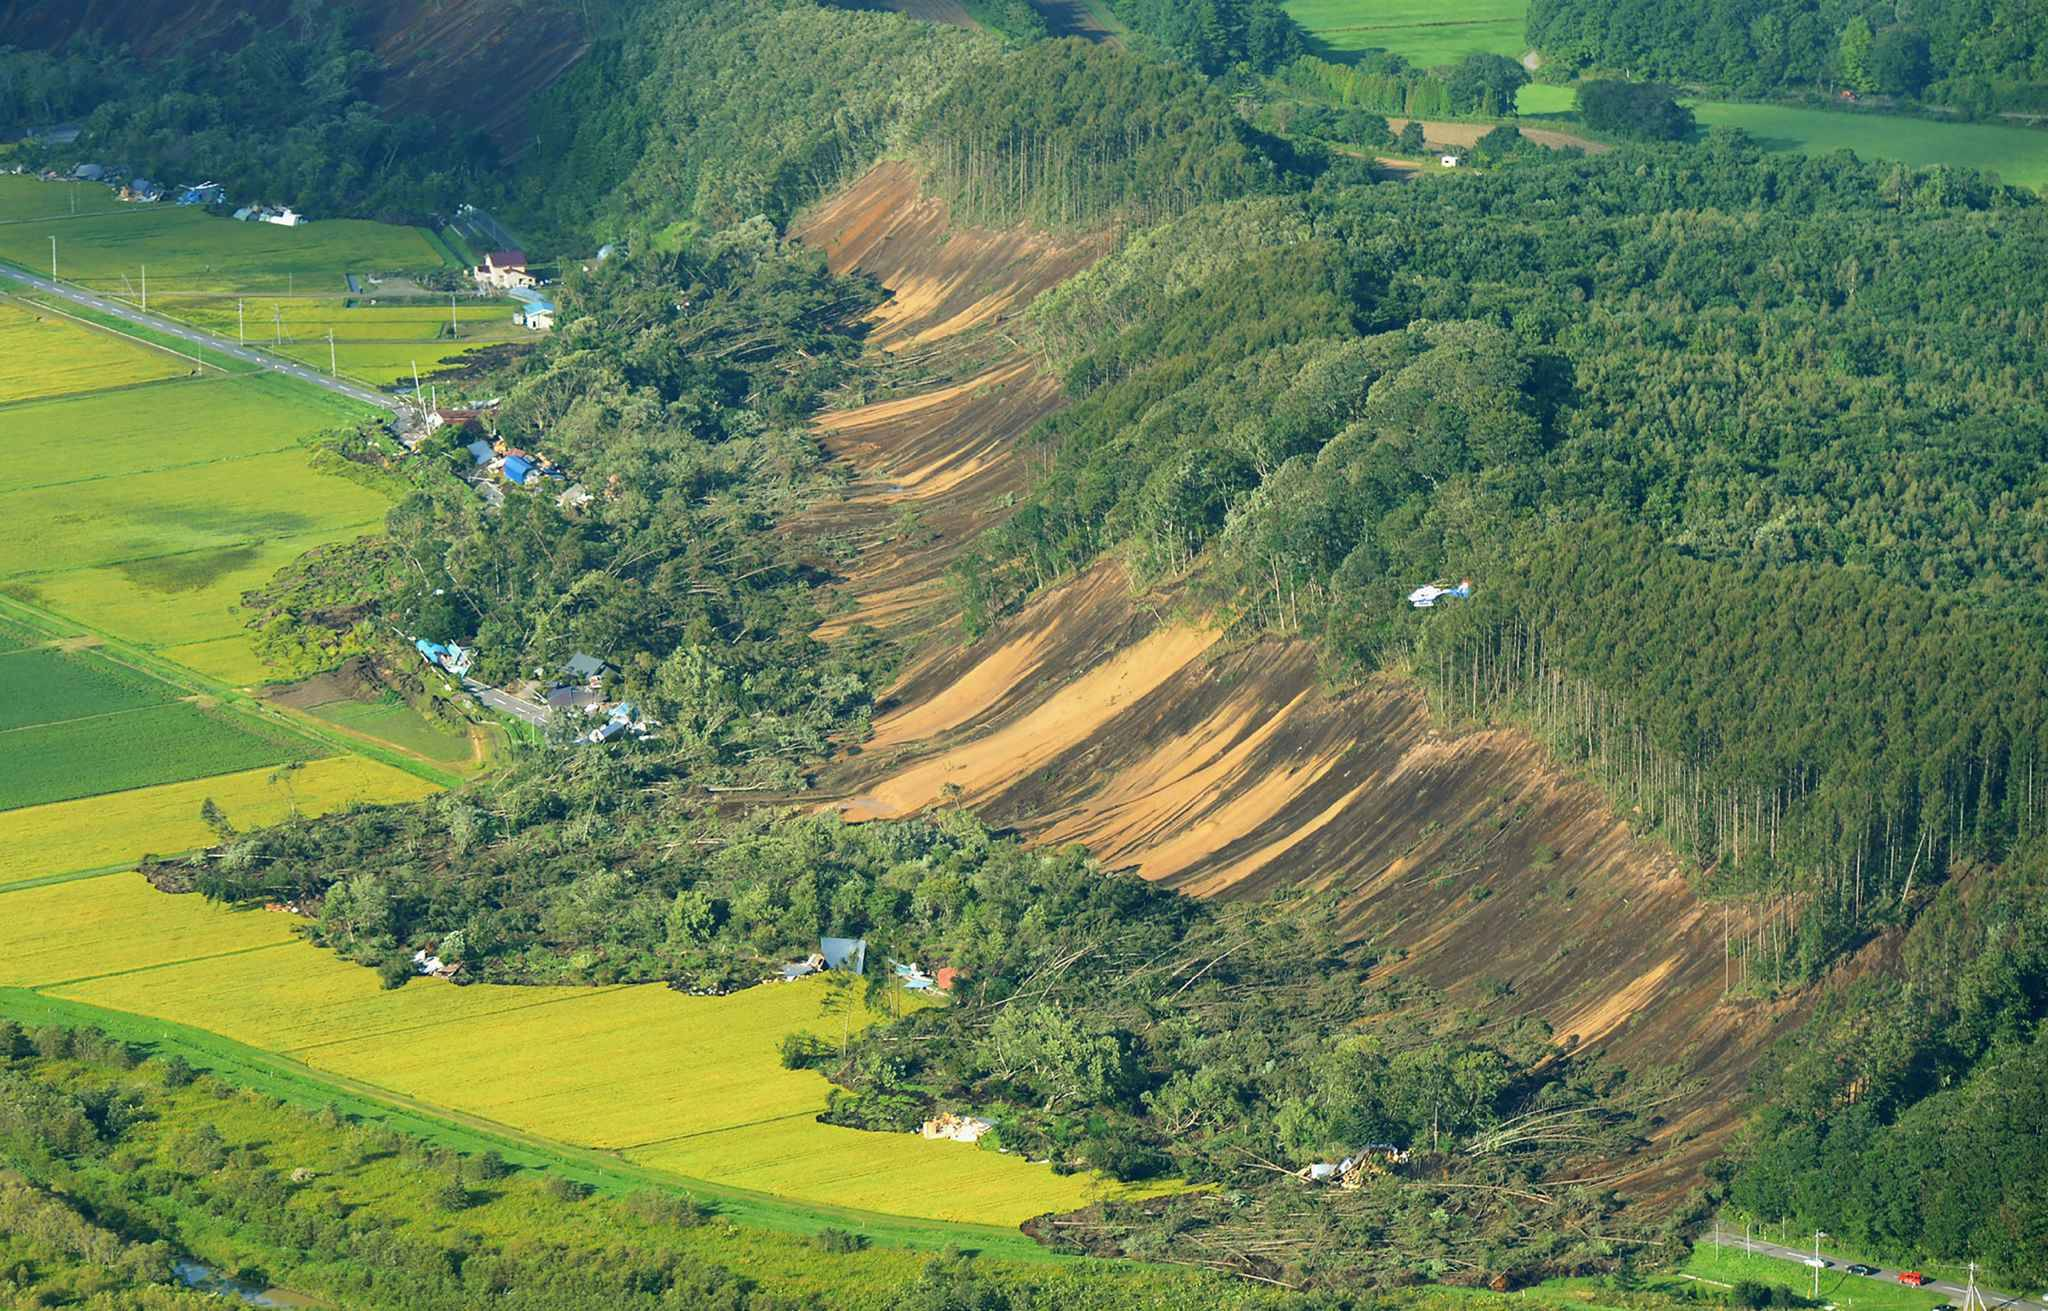 This picture shows an aerial view of houses damaged by a landslide in Atsuma town, Hokkaido prefecture on September 6, 2018, after an earthquake hit the northern Japanese island of Hokkaido. A powerful 6.6 magnitude quake hit the northern Japanese island of Hokkaido on September 6, triggering landslides, bringing down several houses, and killing at least one person with several dozen missing.